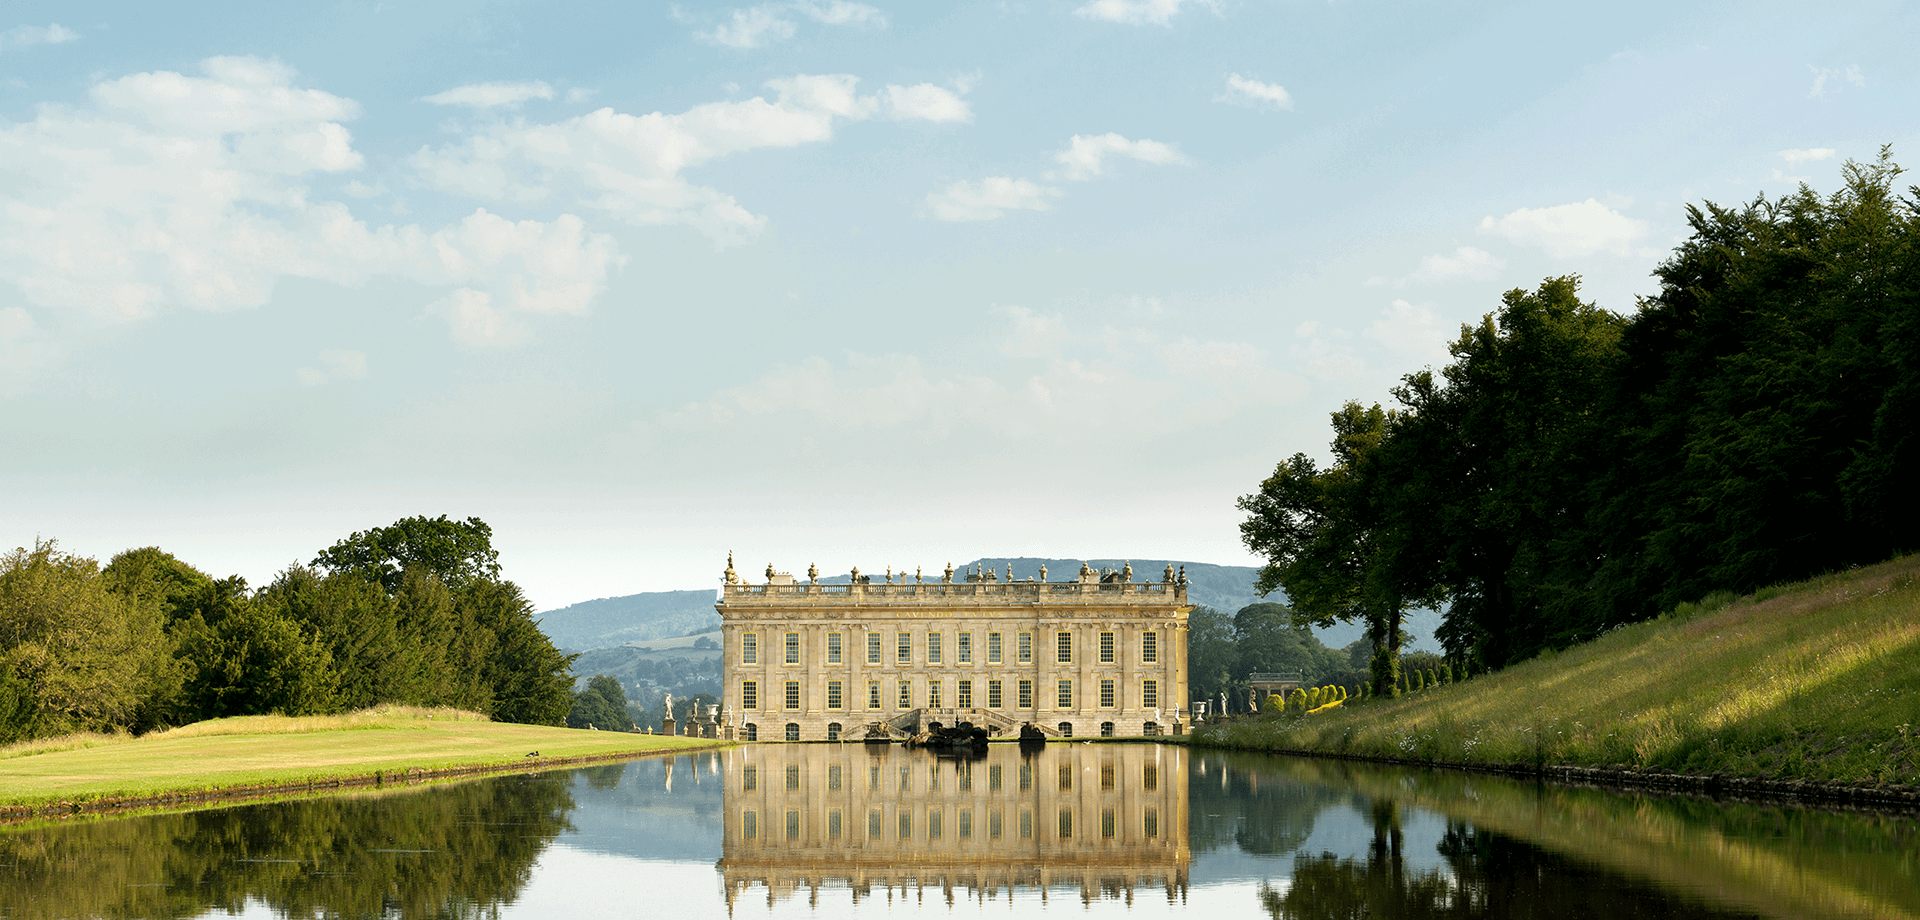 Discover 'Life at Chatsworth' this winter with behind the scenes talks and artisans showcase